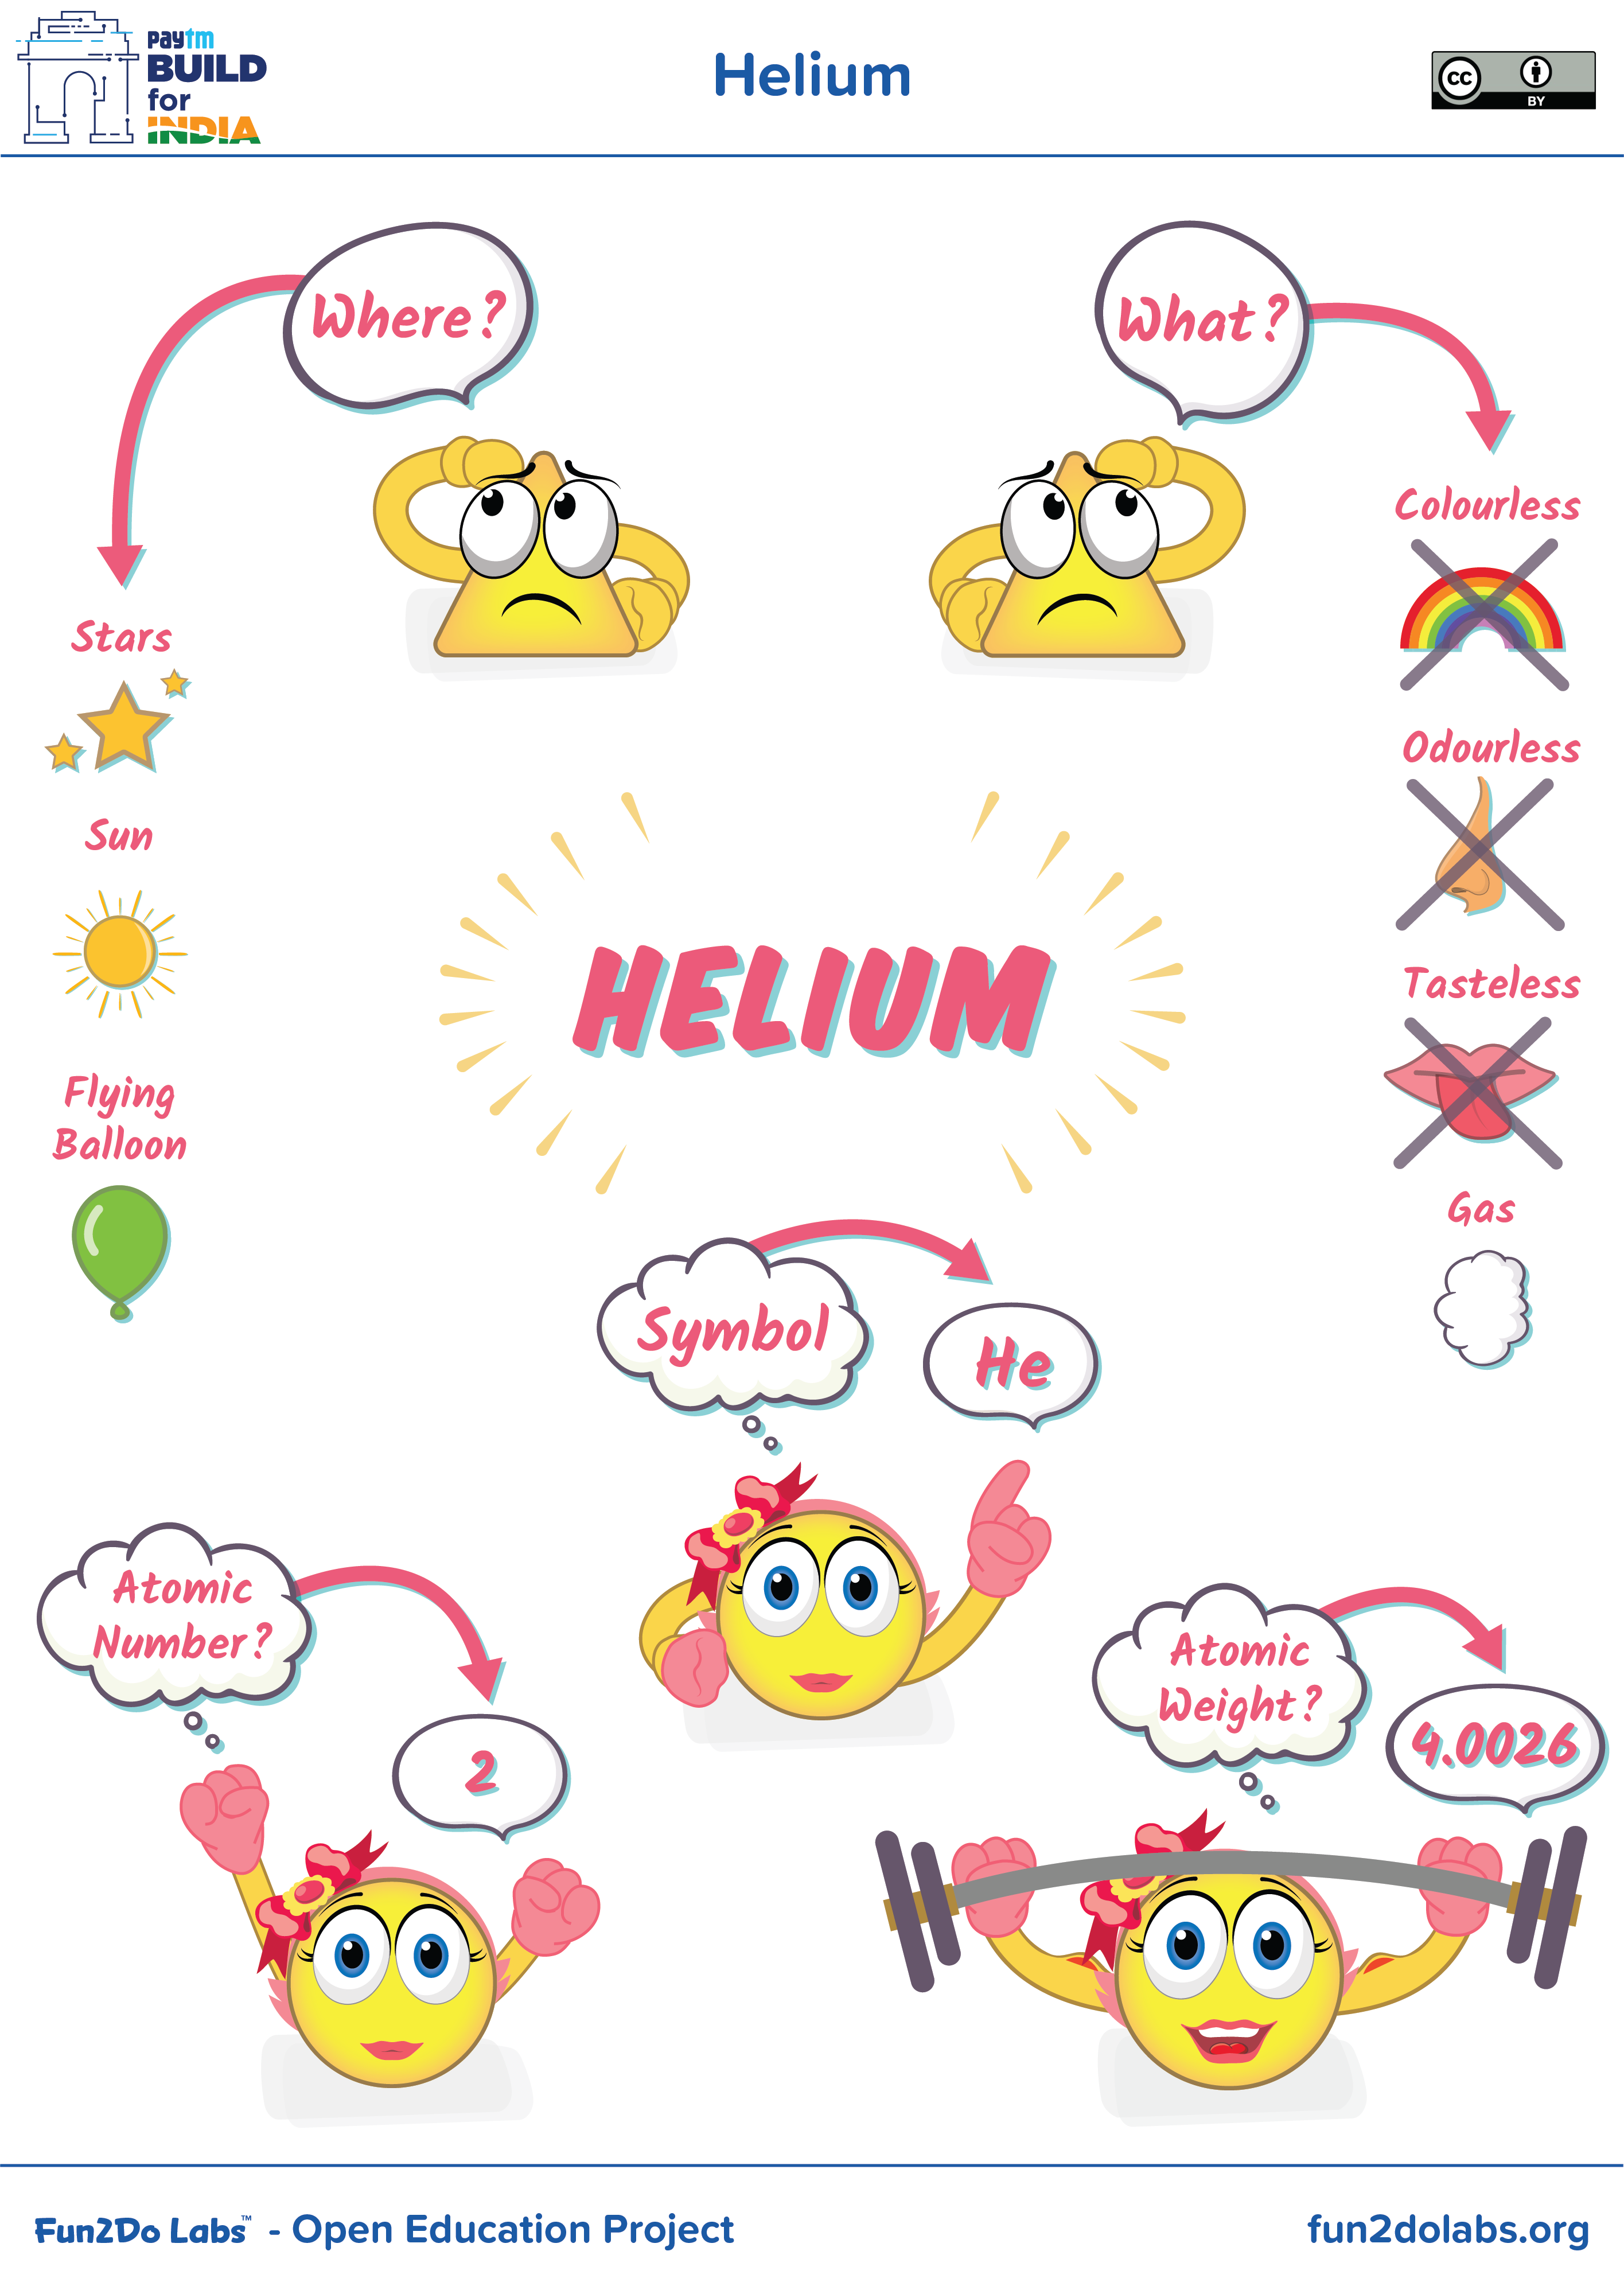 hight resolution of you can use this image for introducing helium to kids where is helium found what is helium atomic symbol of helium atomic number of helium